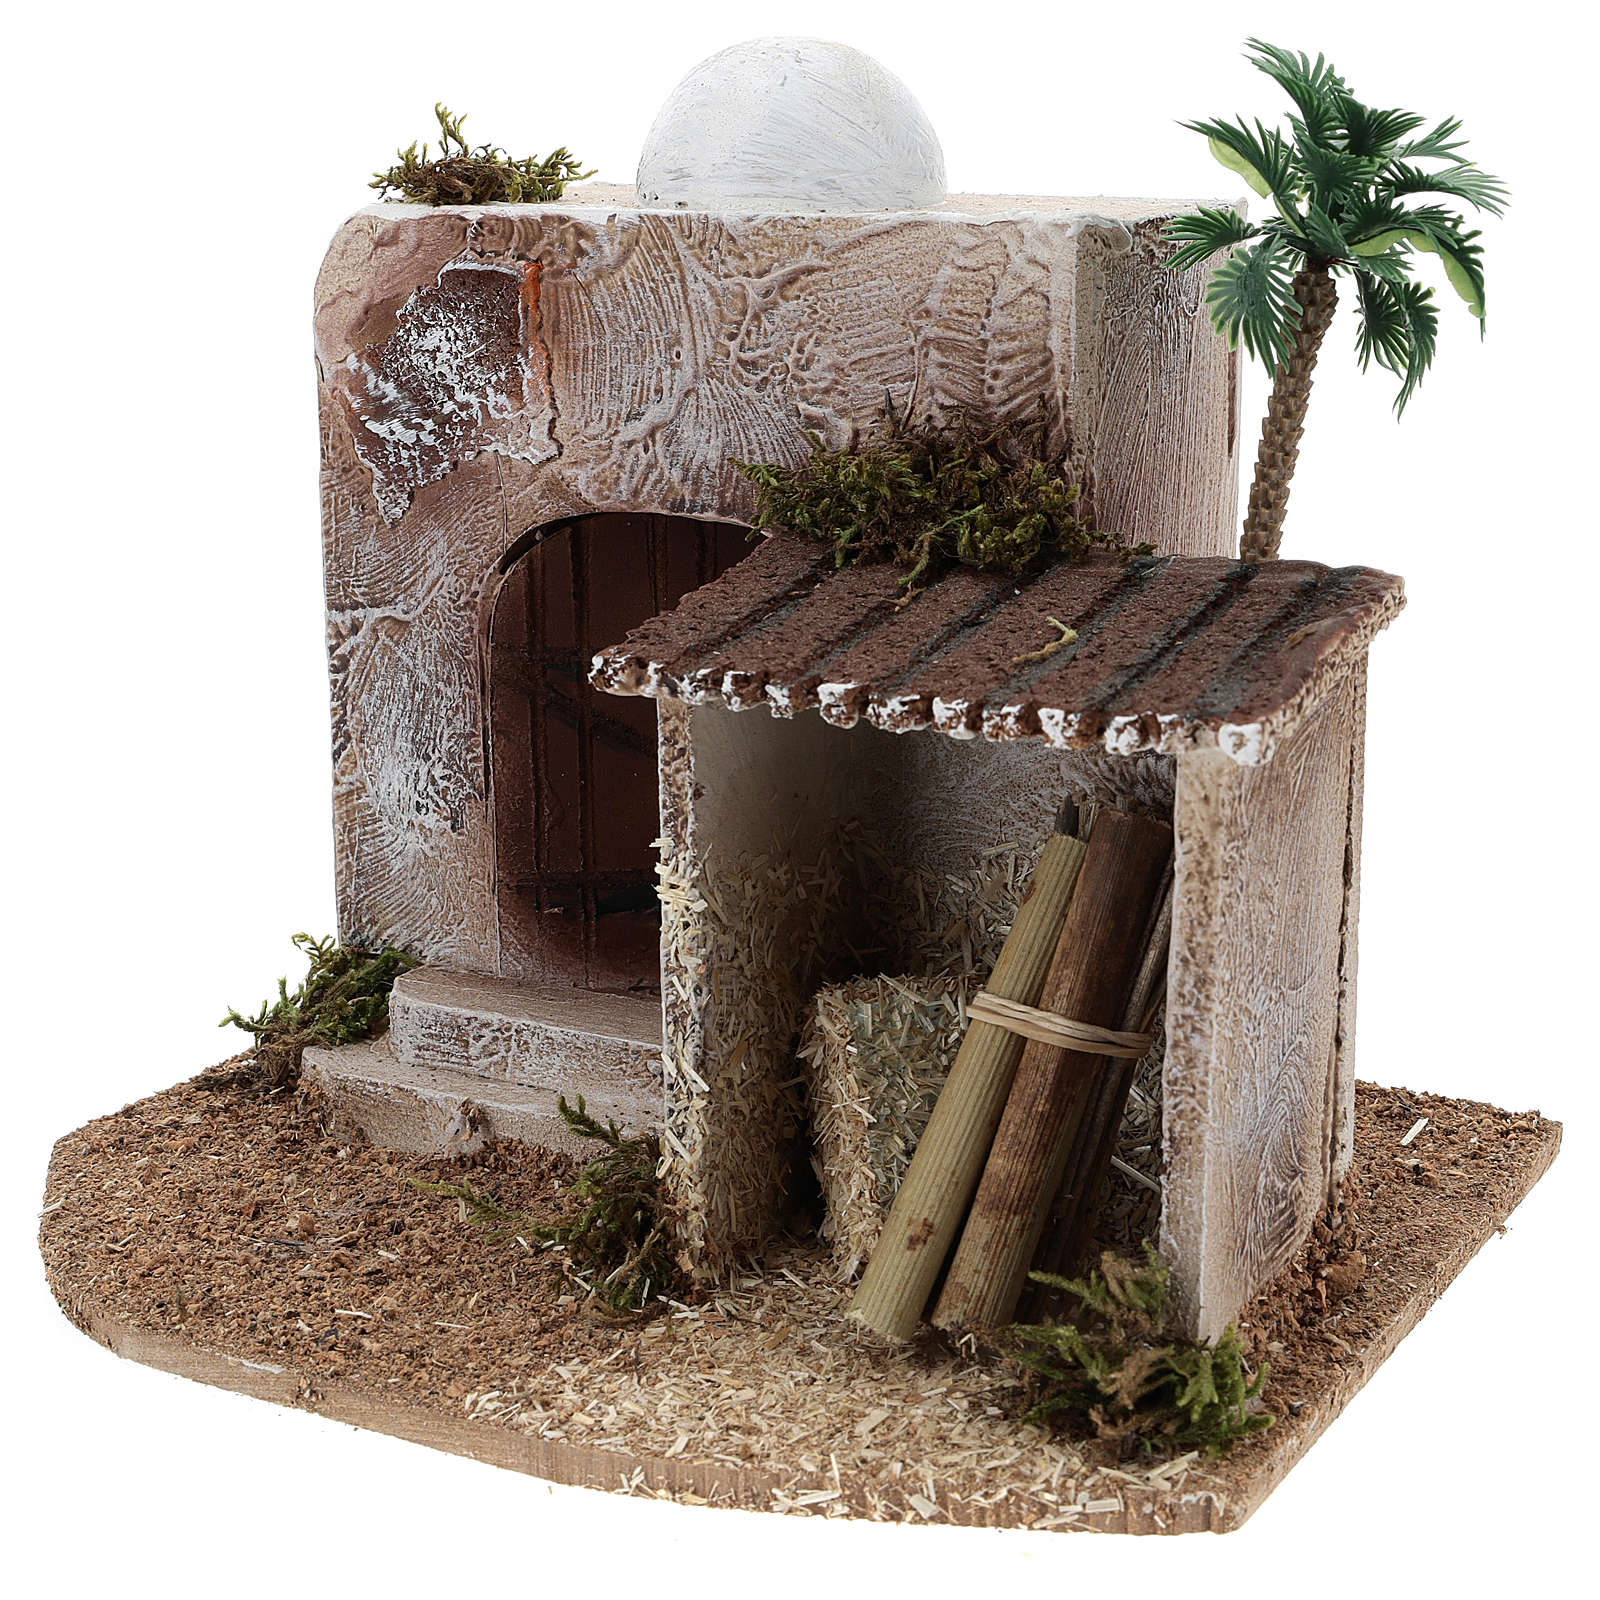 House with hut for Arabic style Nativity scene 15x20x15 4